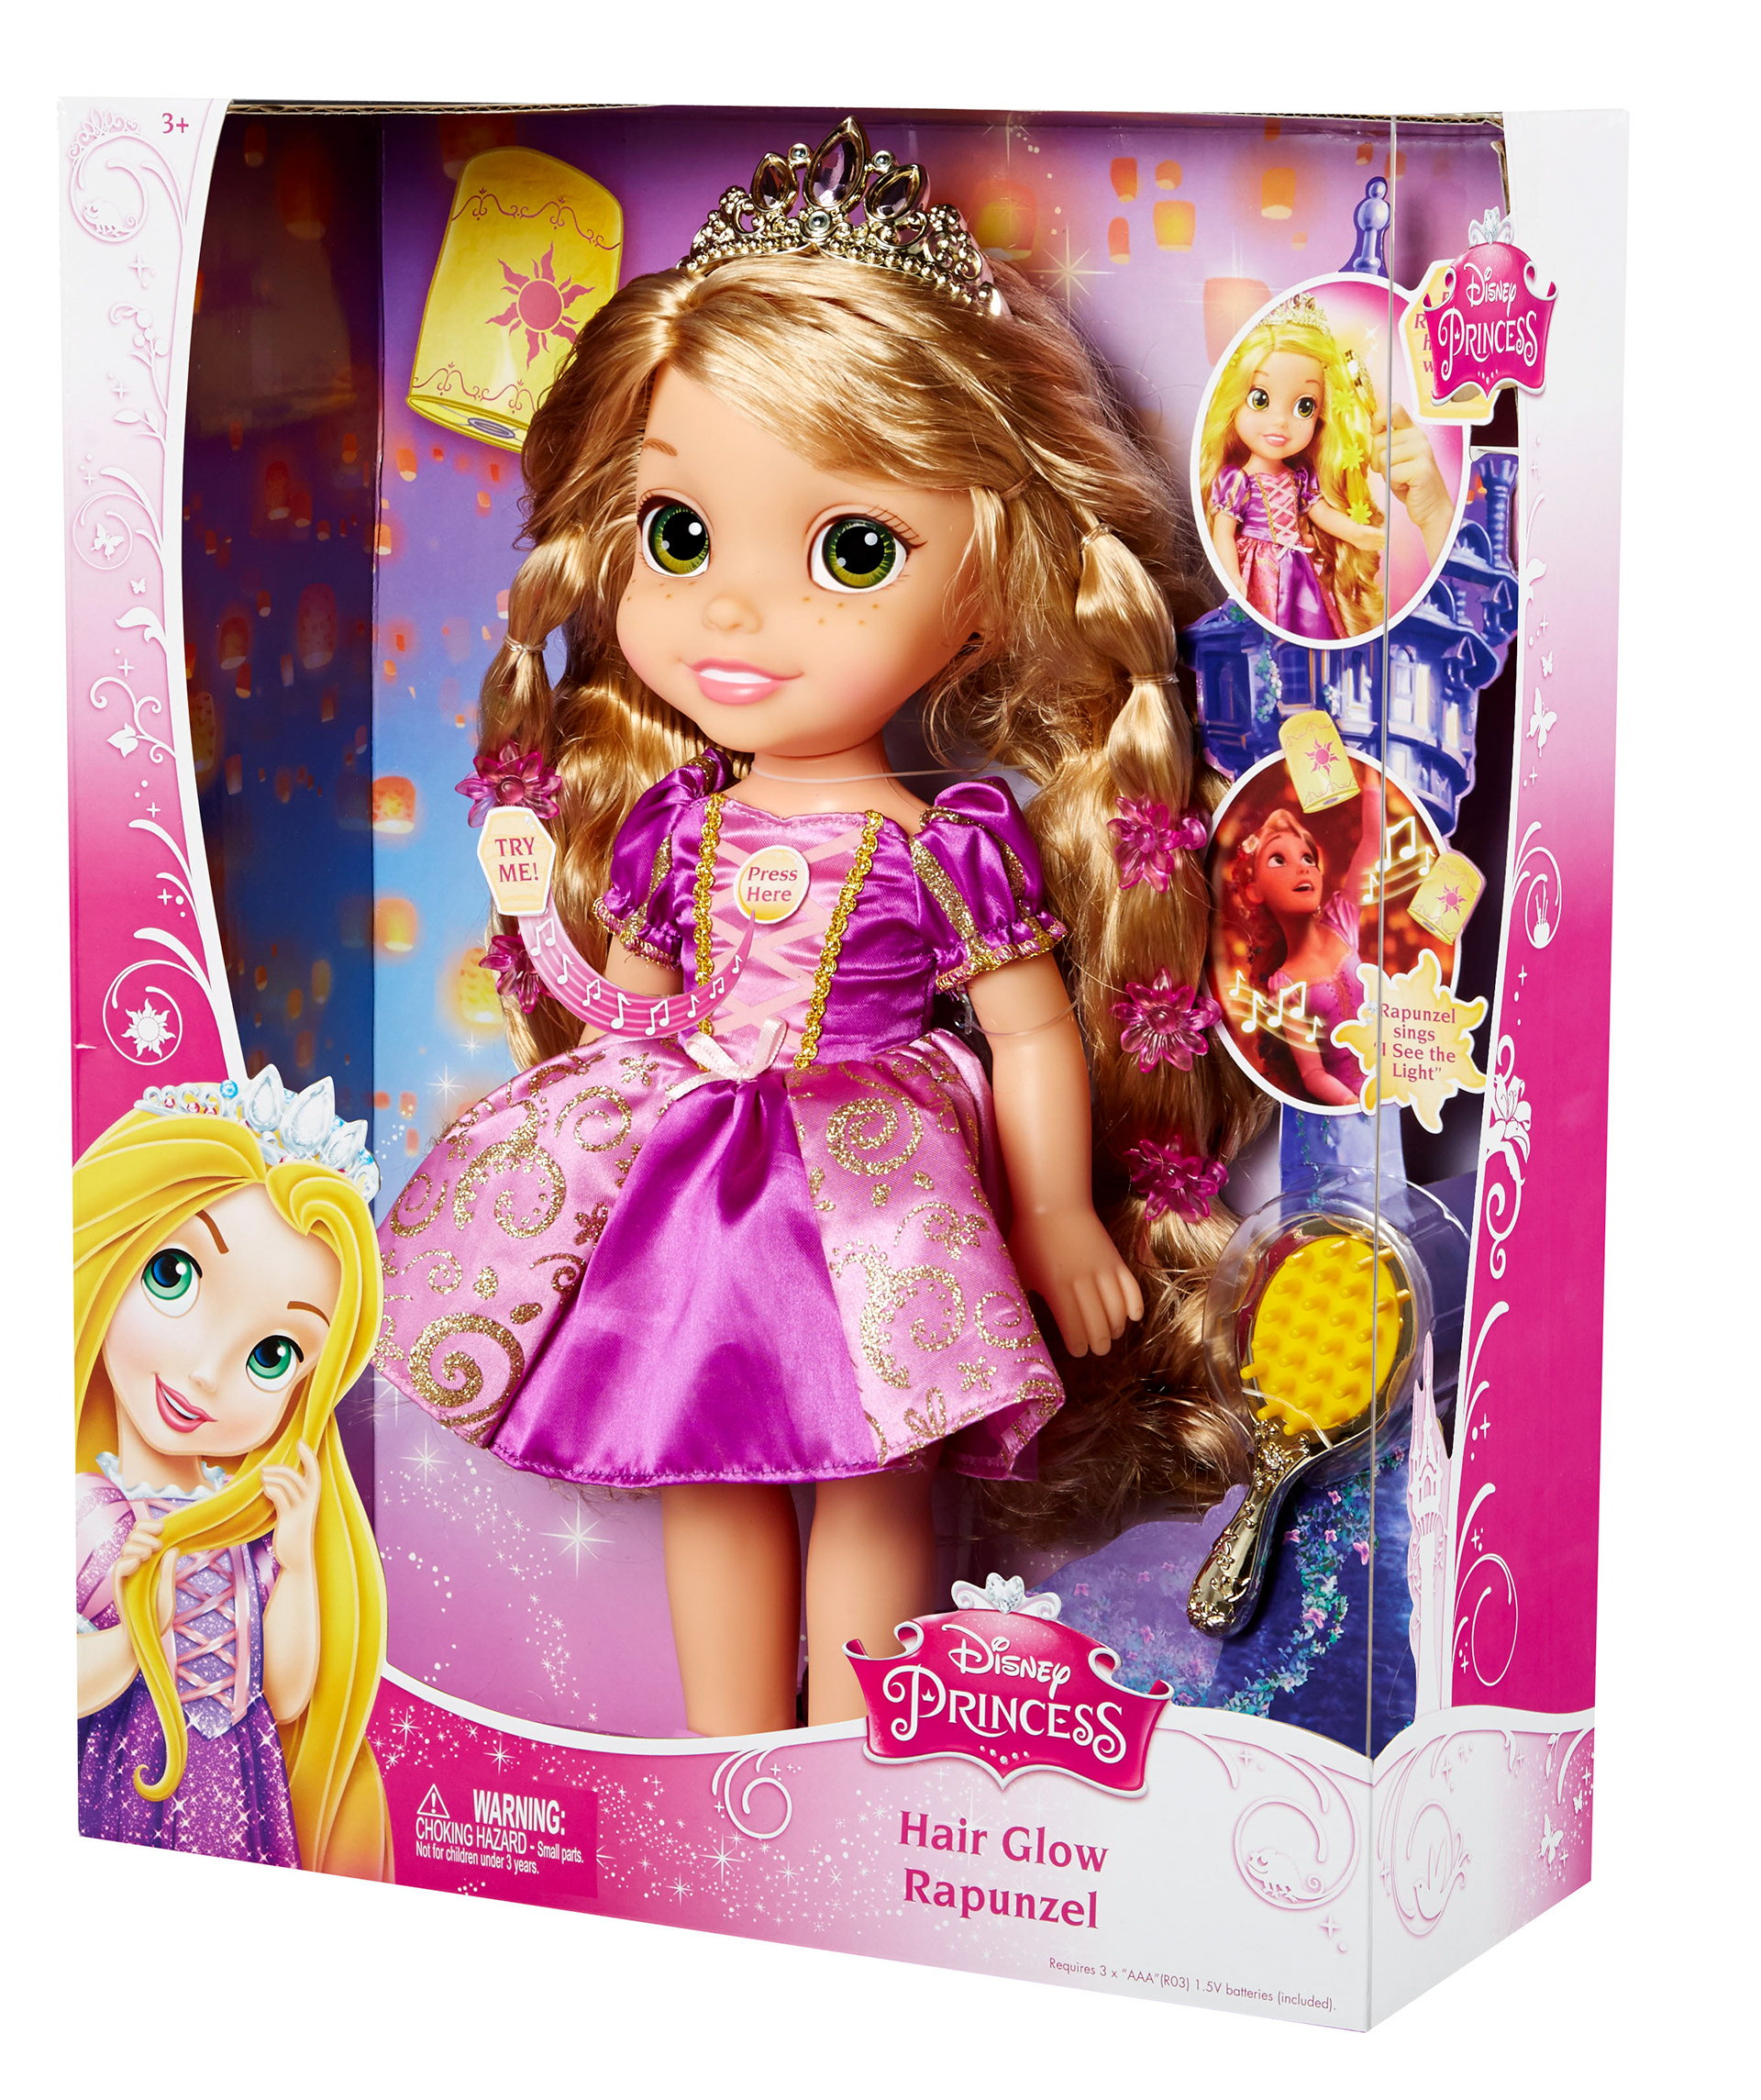 Hair Glow Rapunzel Packaging Design Art Direction Style Me Princess Ortment